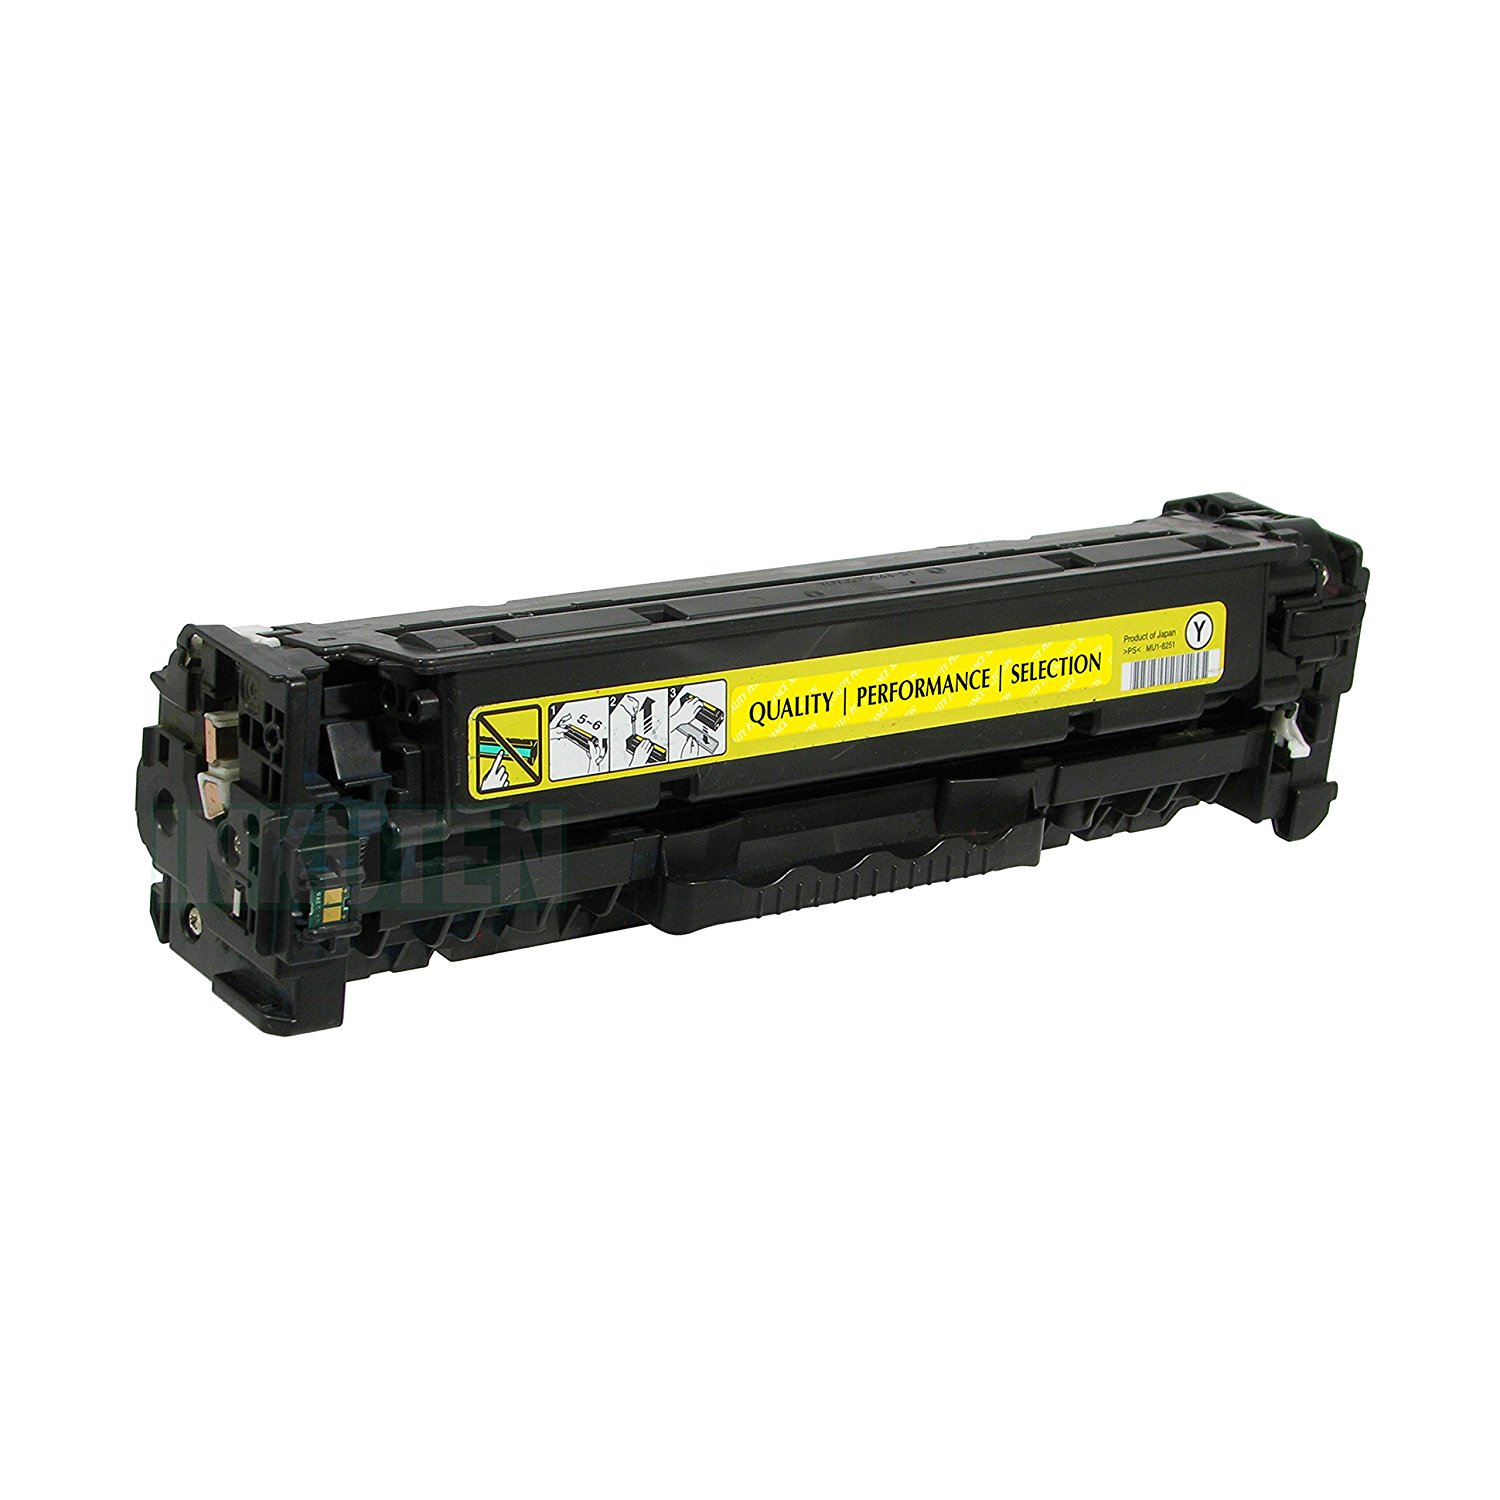 INKUTEN (TM) Compatible Toner Cartridge Replacement for Hewlett Packard HP CF402A 201A (1 Yellow) 1 Pack Compatible with M252dw, M252n, M277dw, M277n